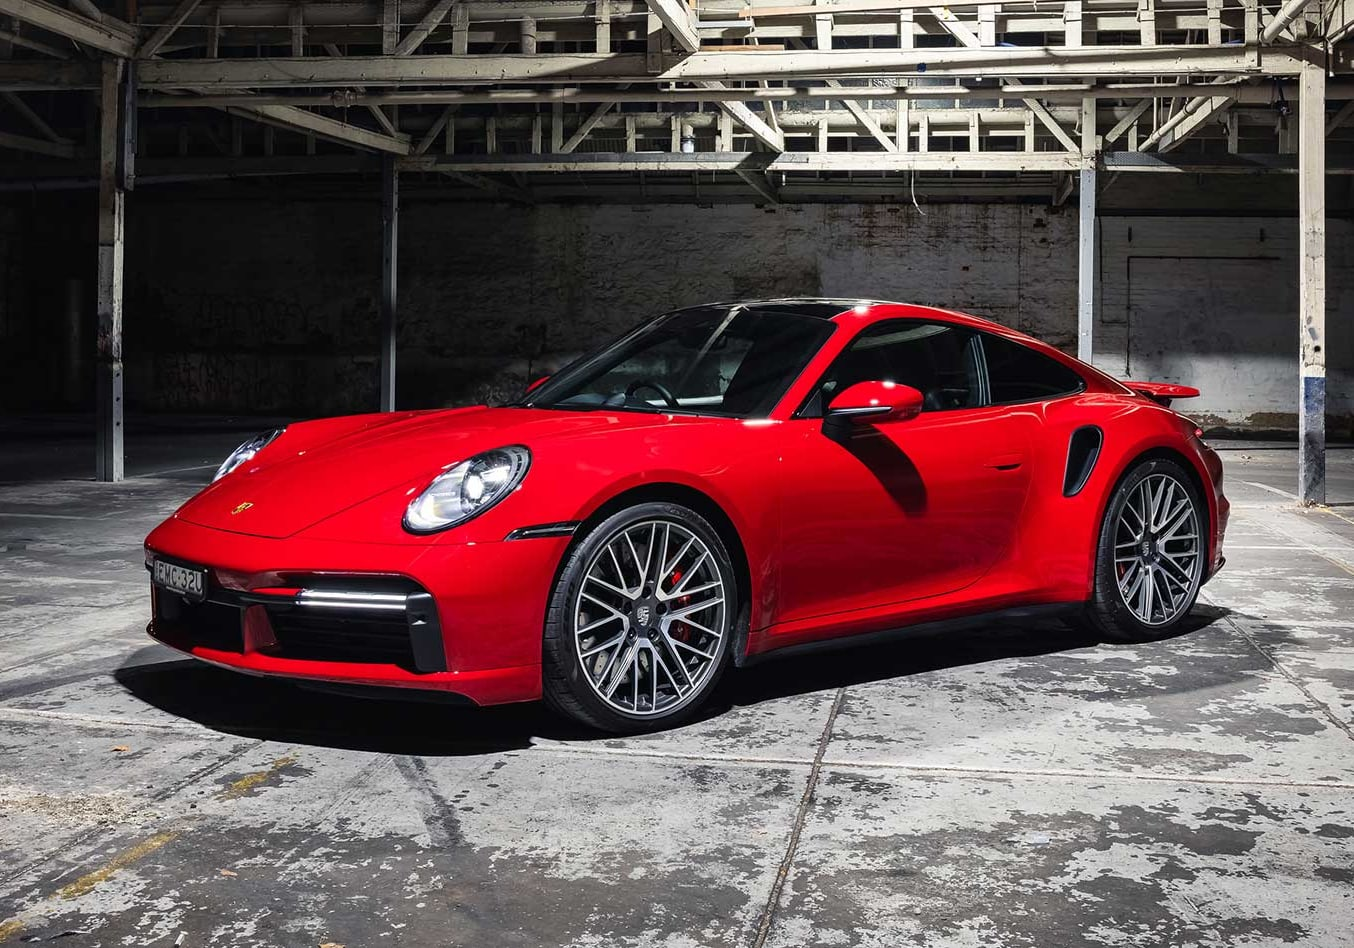 2021 Porsche 911 Turbo pricing and features